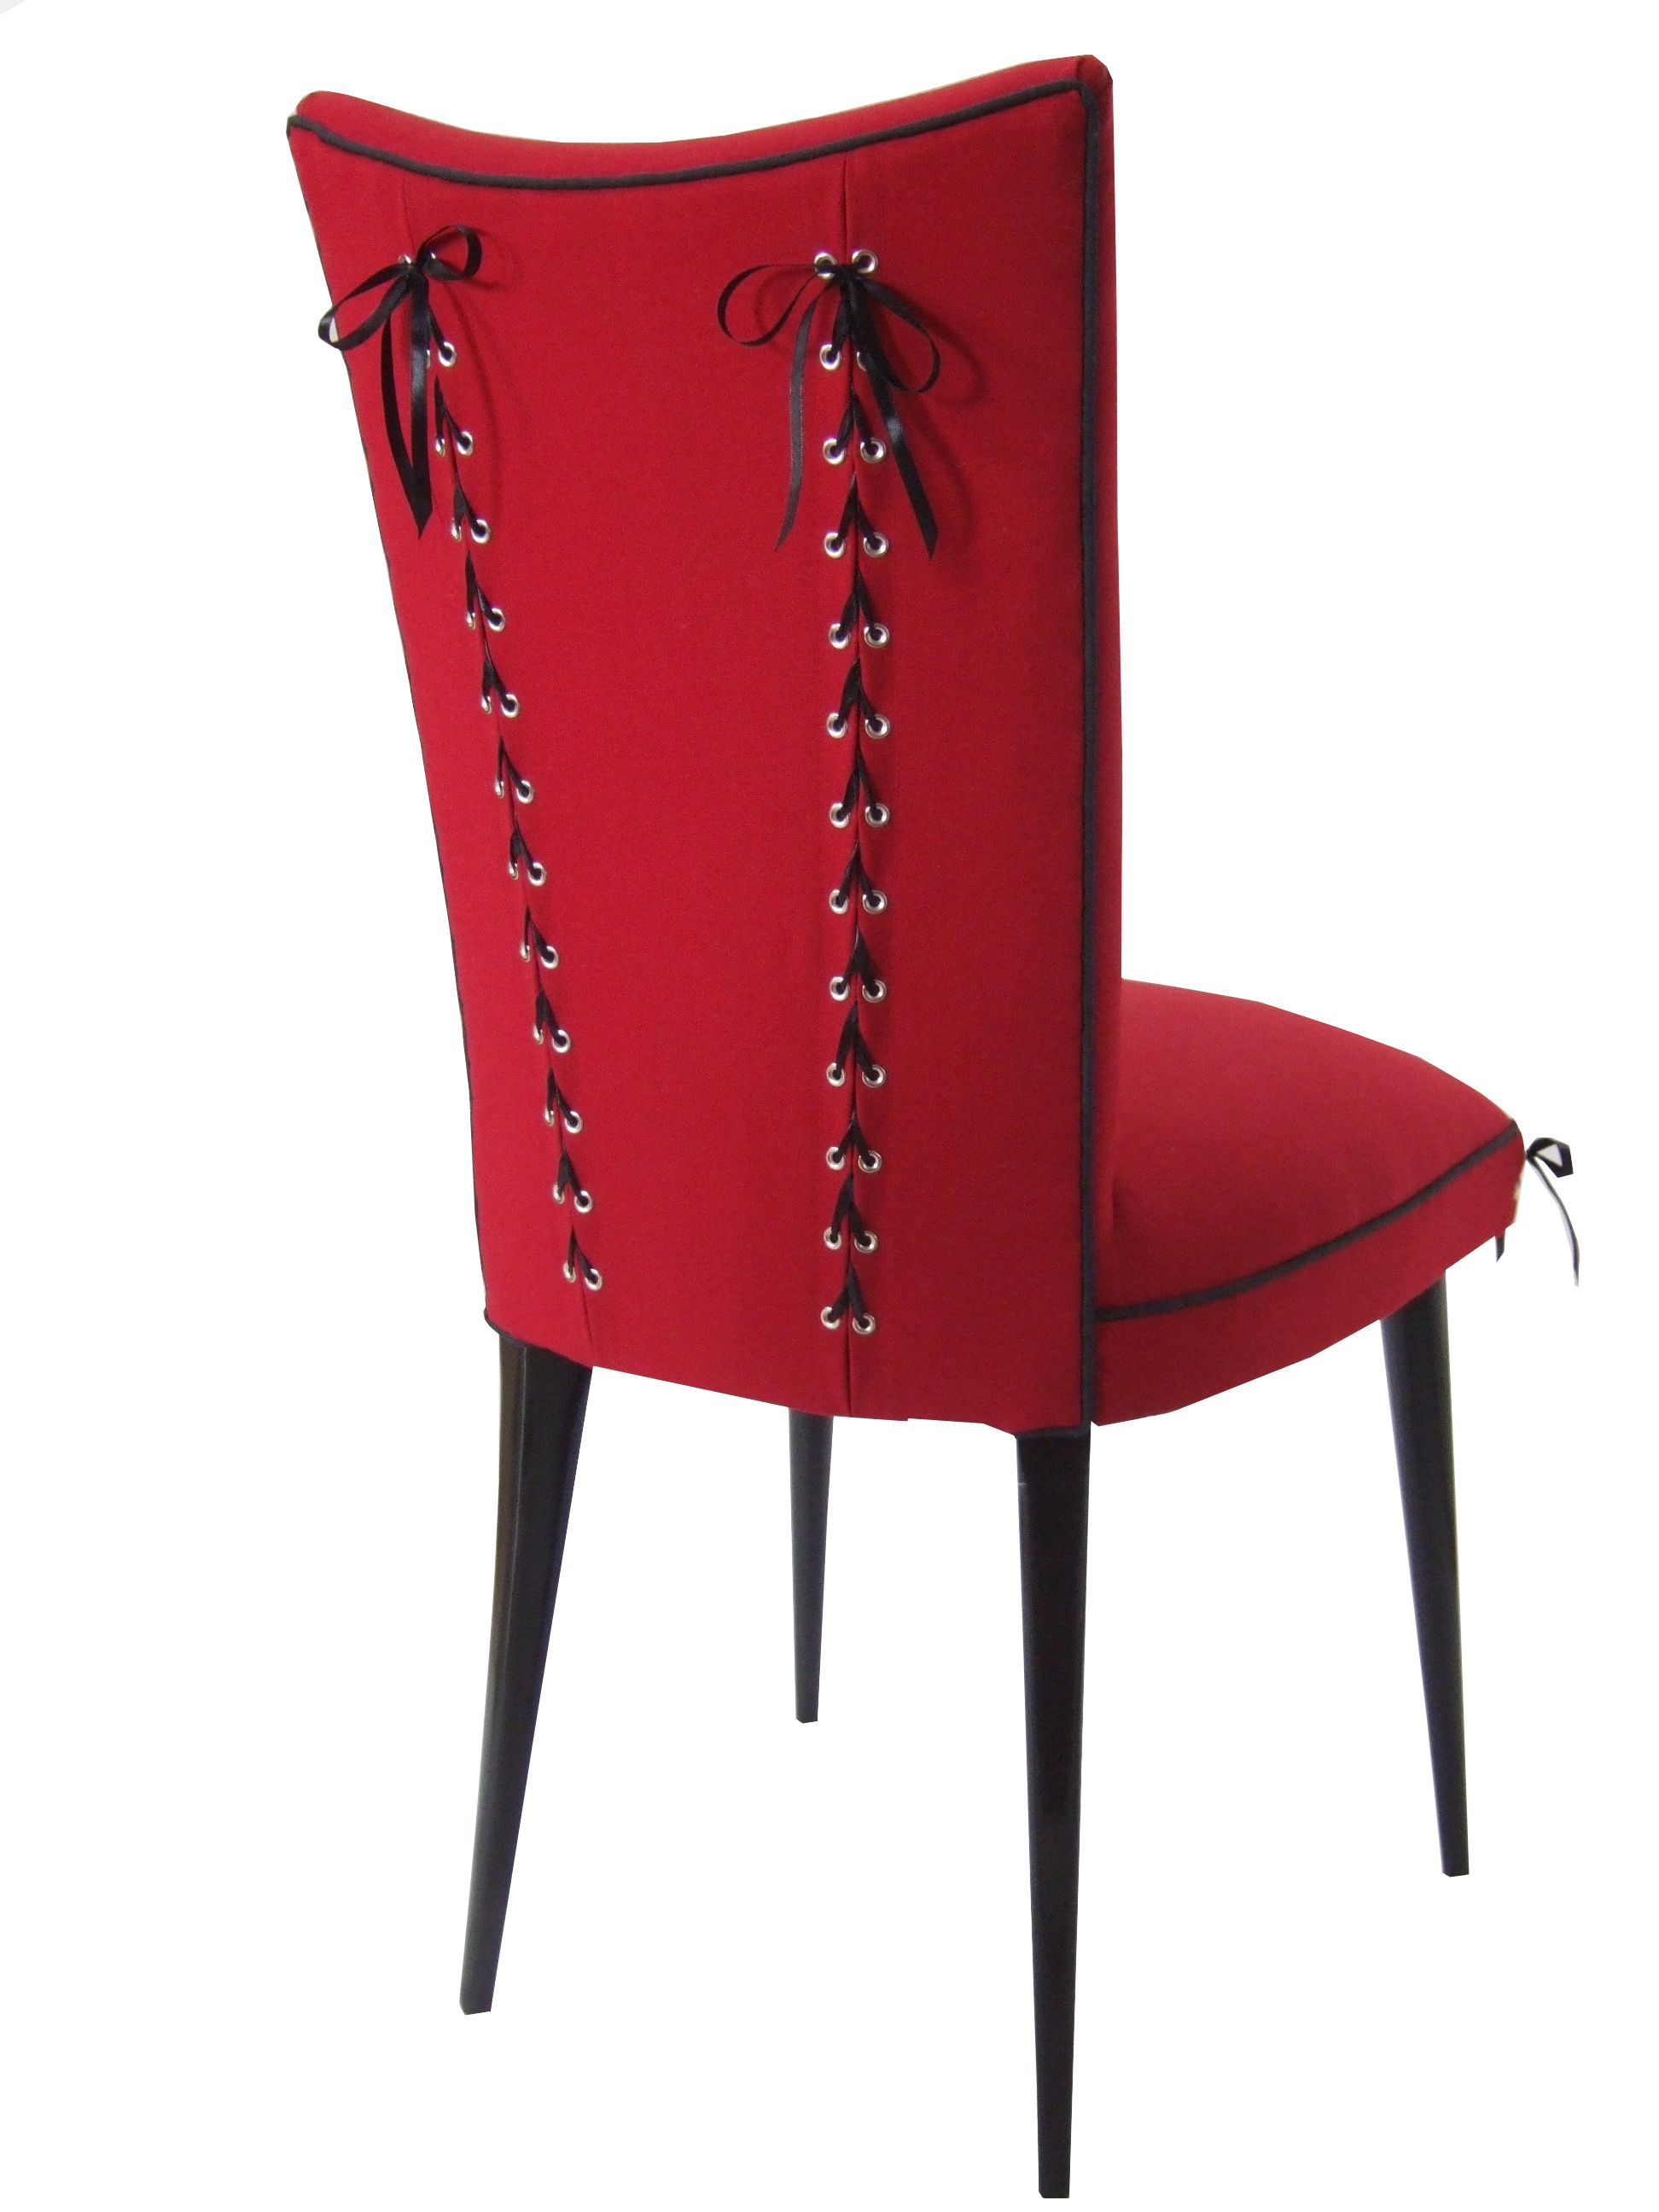 Stiletto Chair Can Can Stiletto Furniture Chairs Red Accent Chair Accent